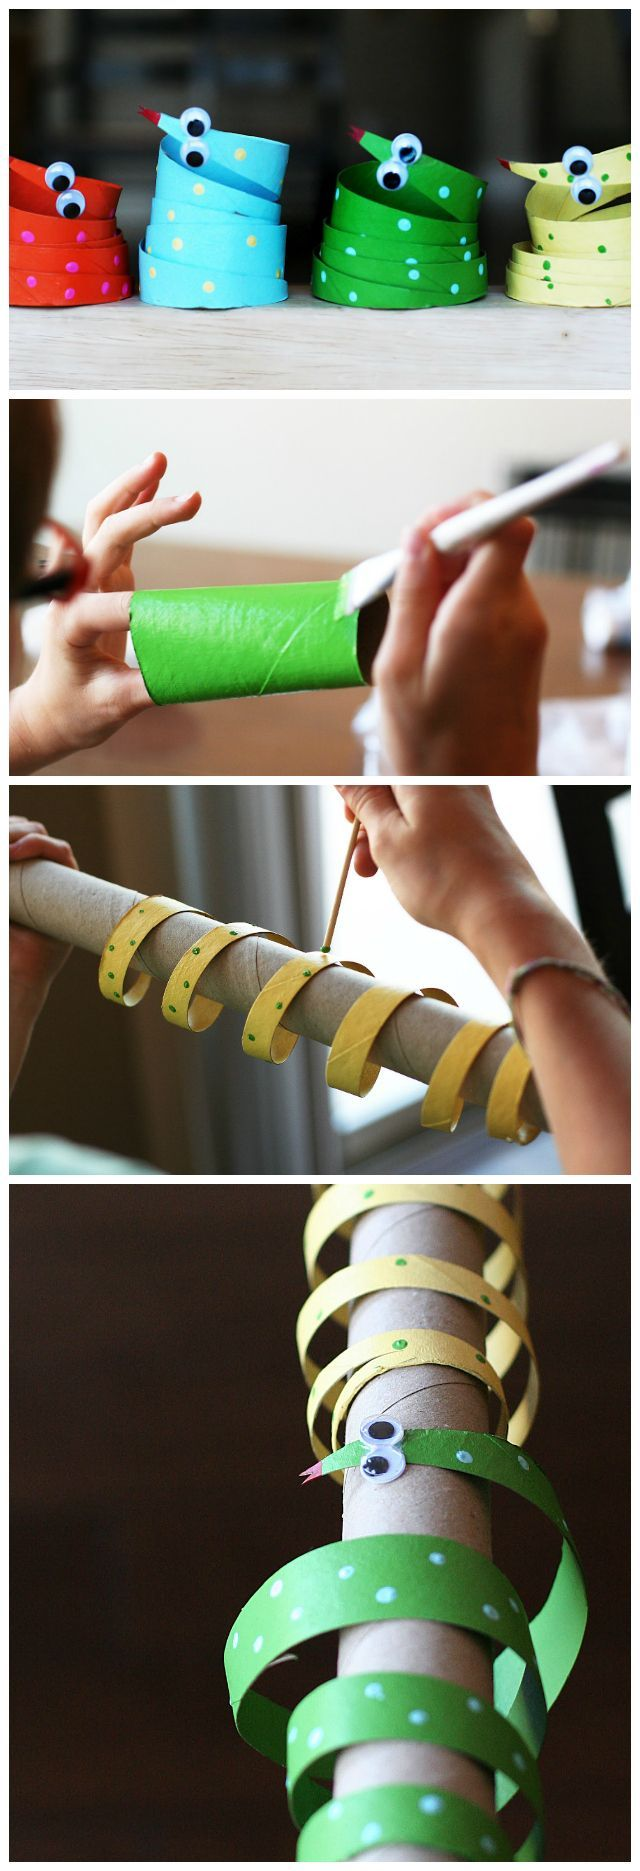 Schlange aus Klopapierrollen - Toilet paper snake craft for kids